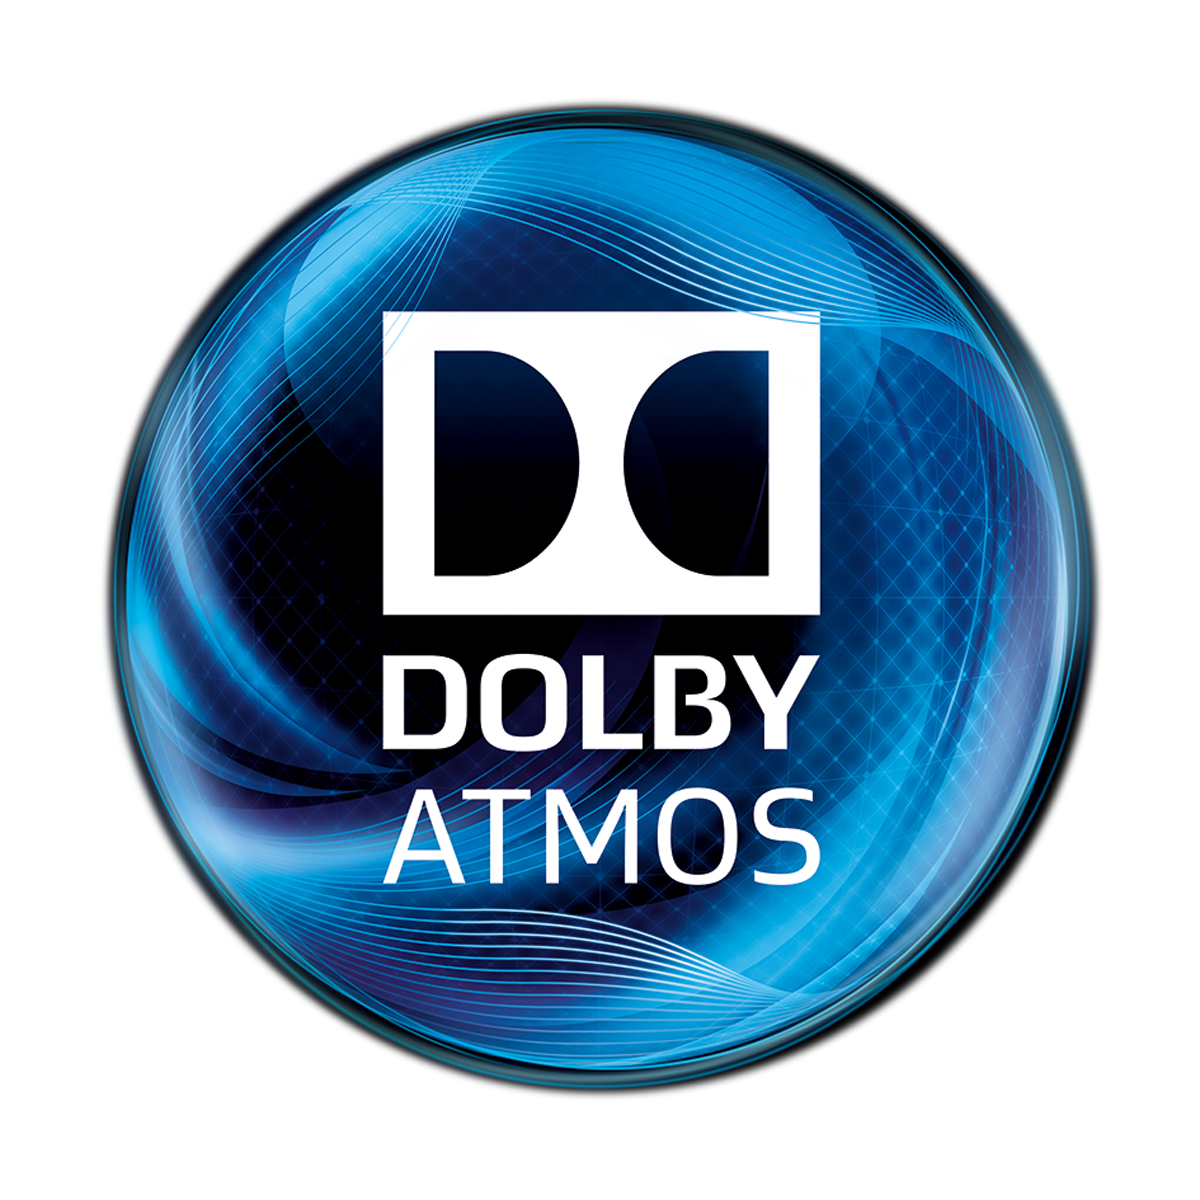 Dolby Atmos Entertainment Comes To The Home Via Blu Ray